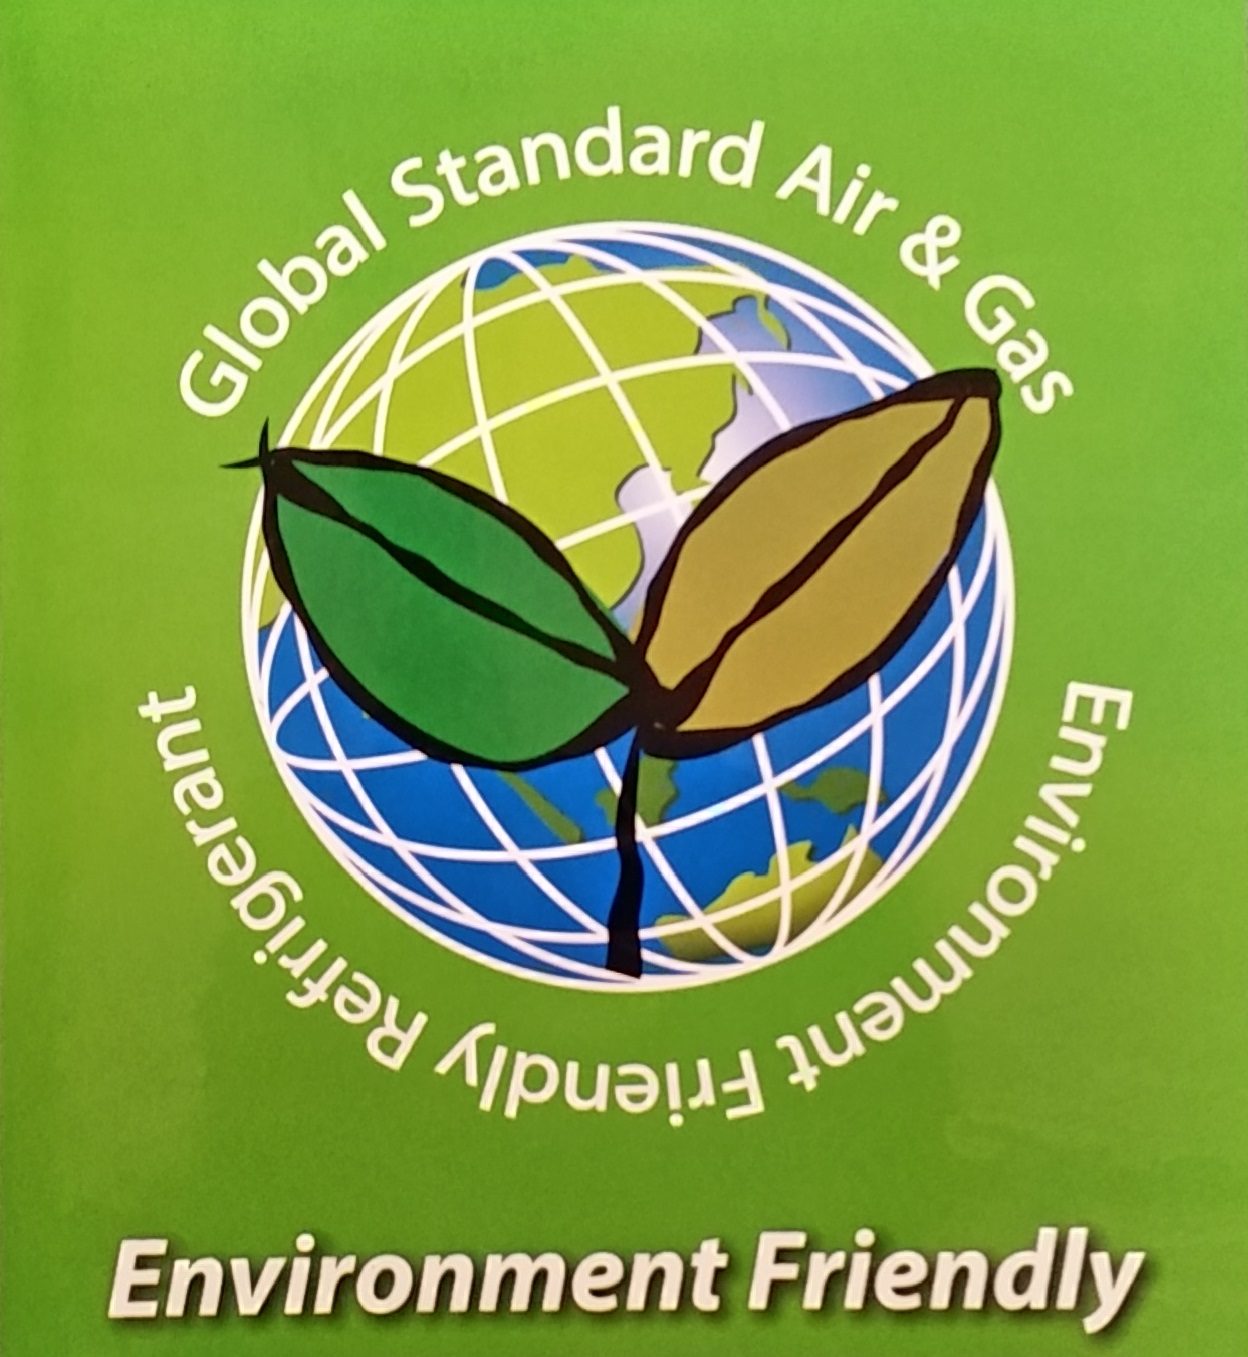 GSA Environmentally Friendly Refrigerant